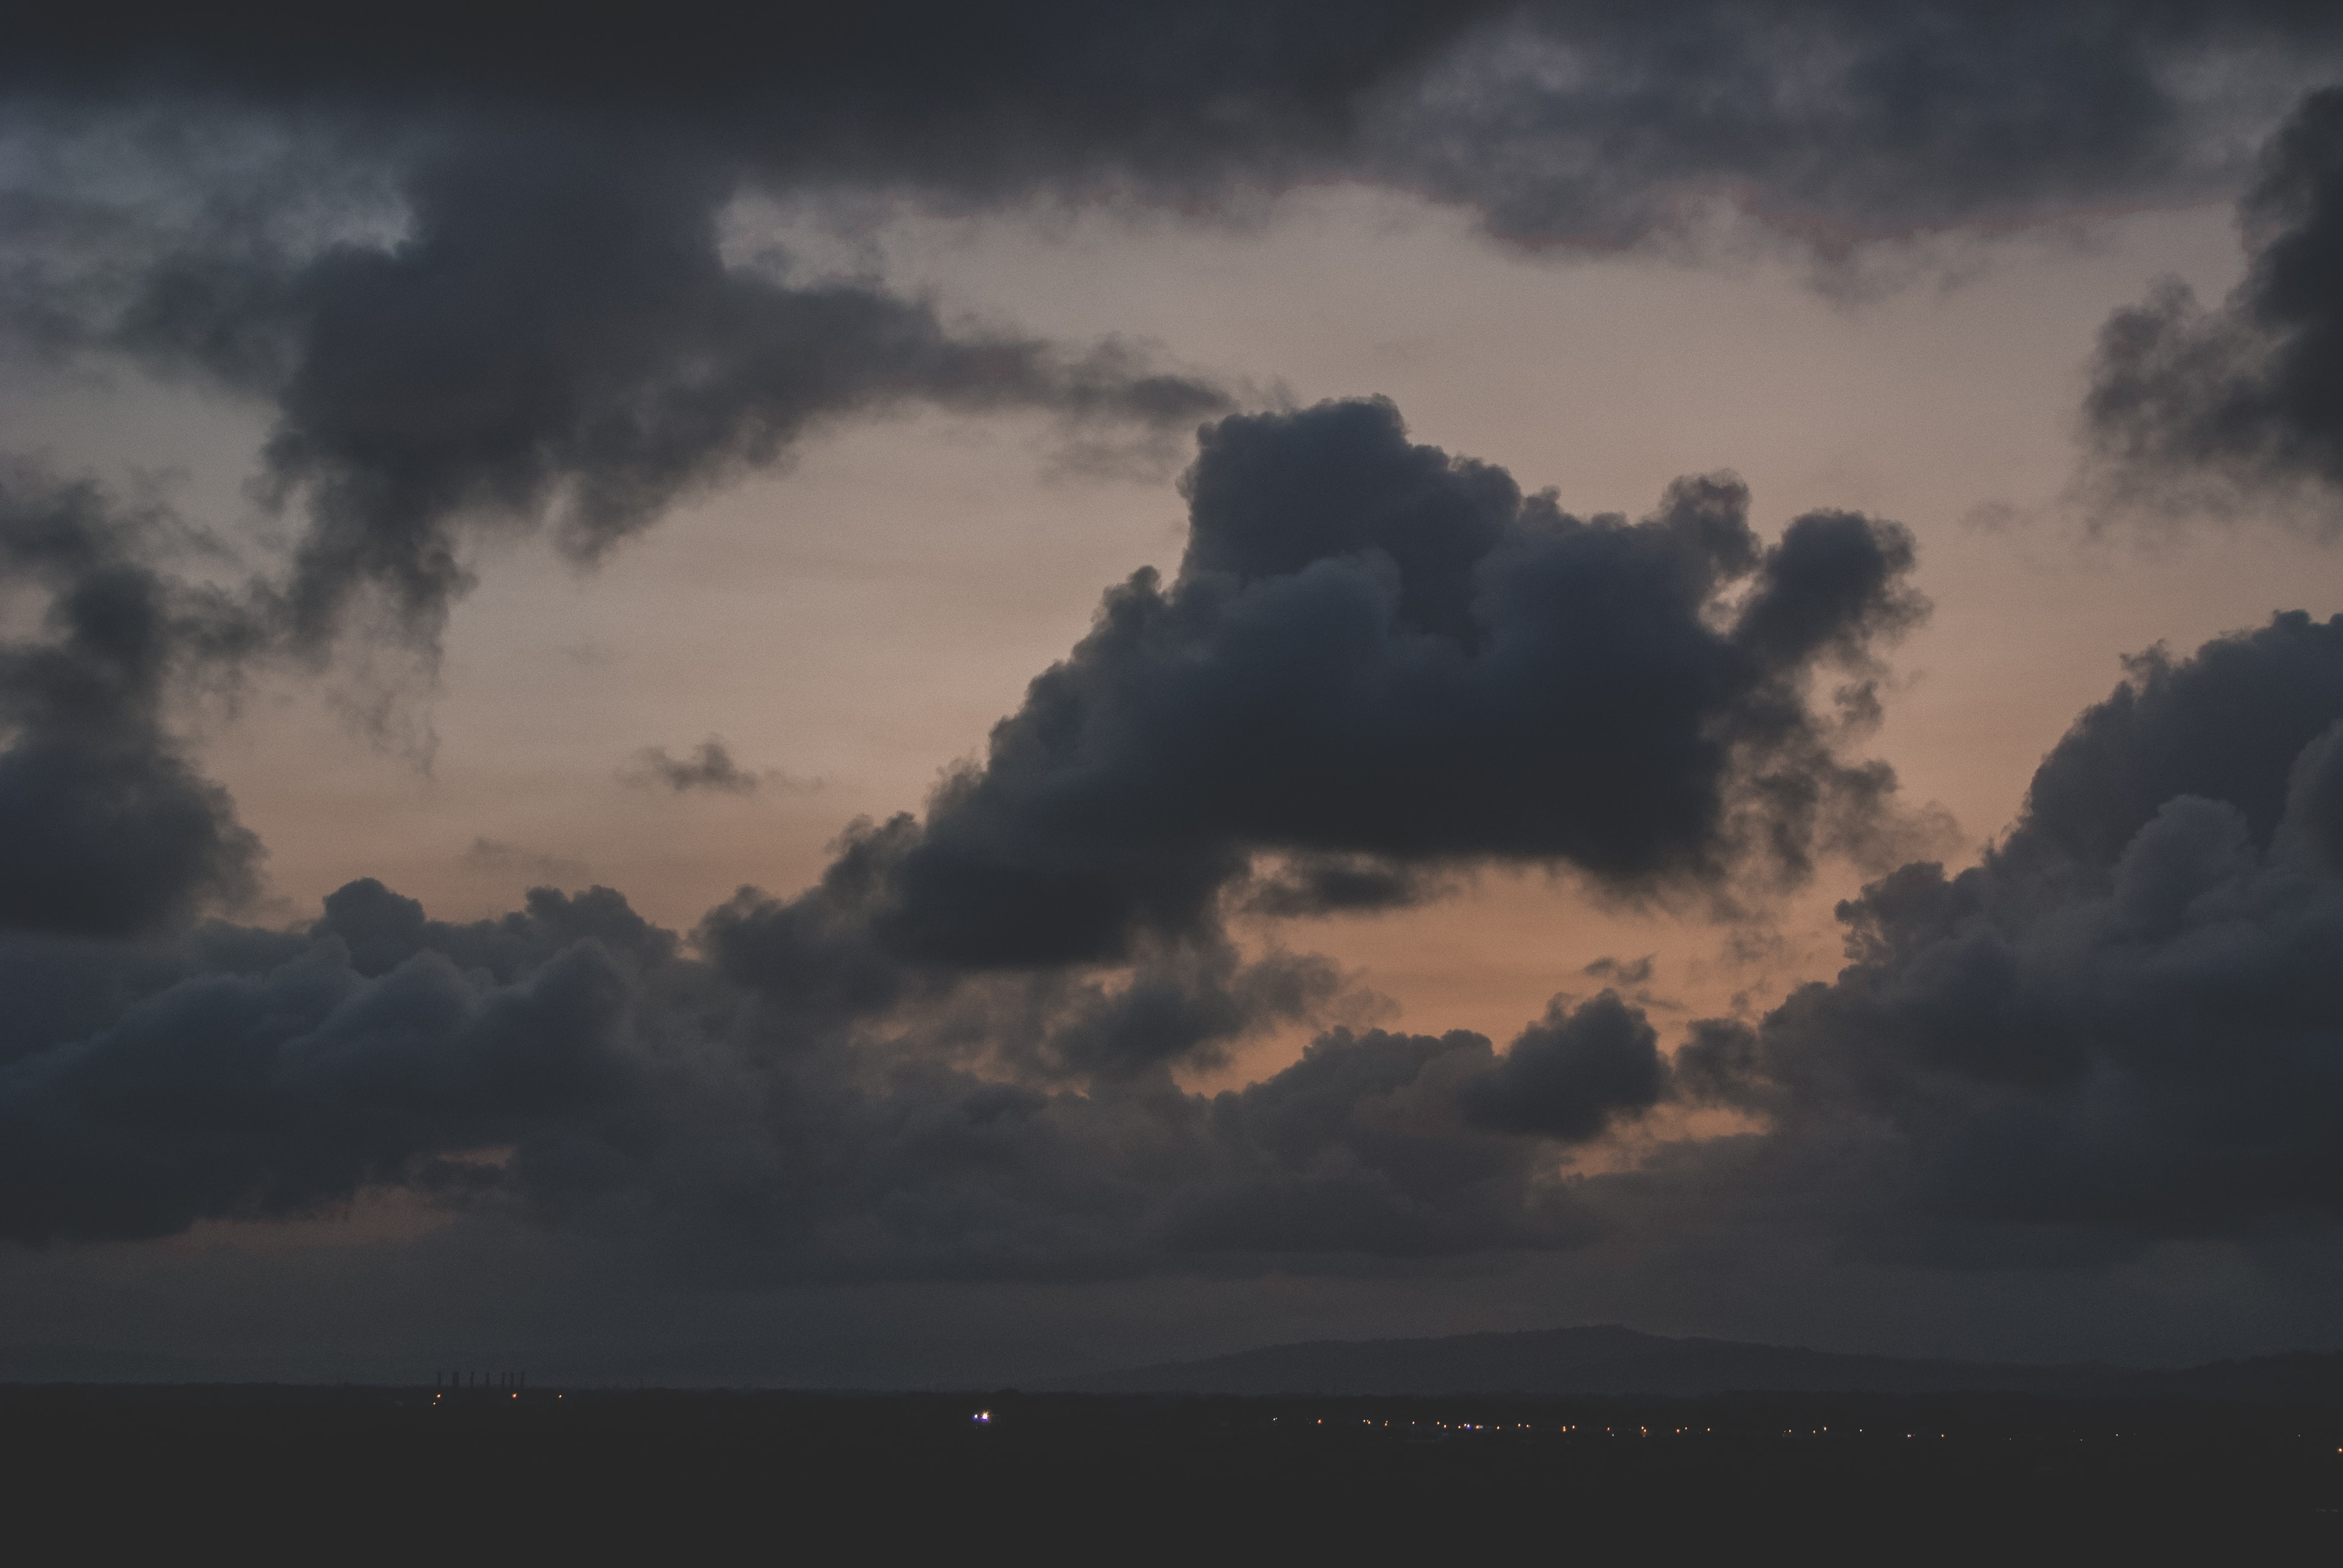 cloudy sky during nightime